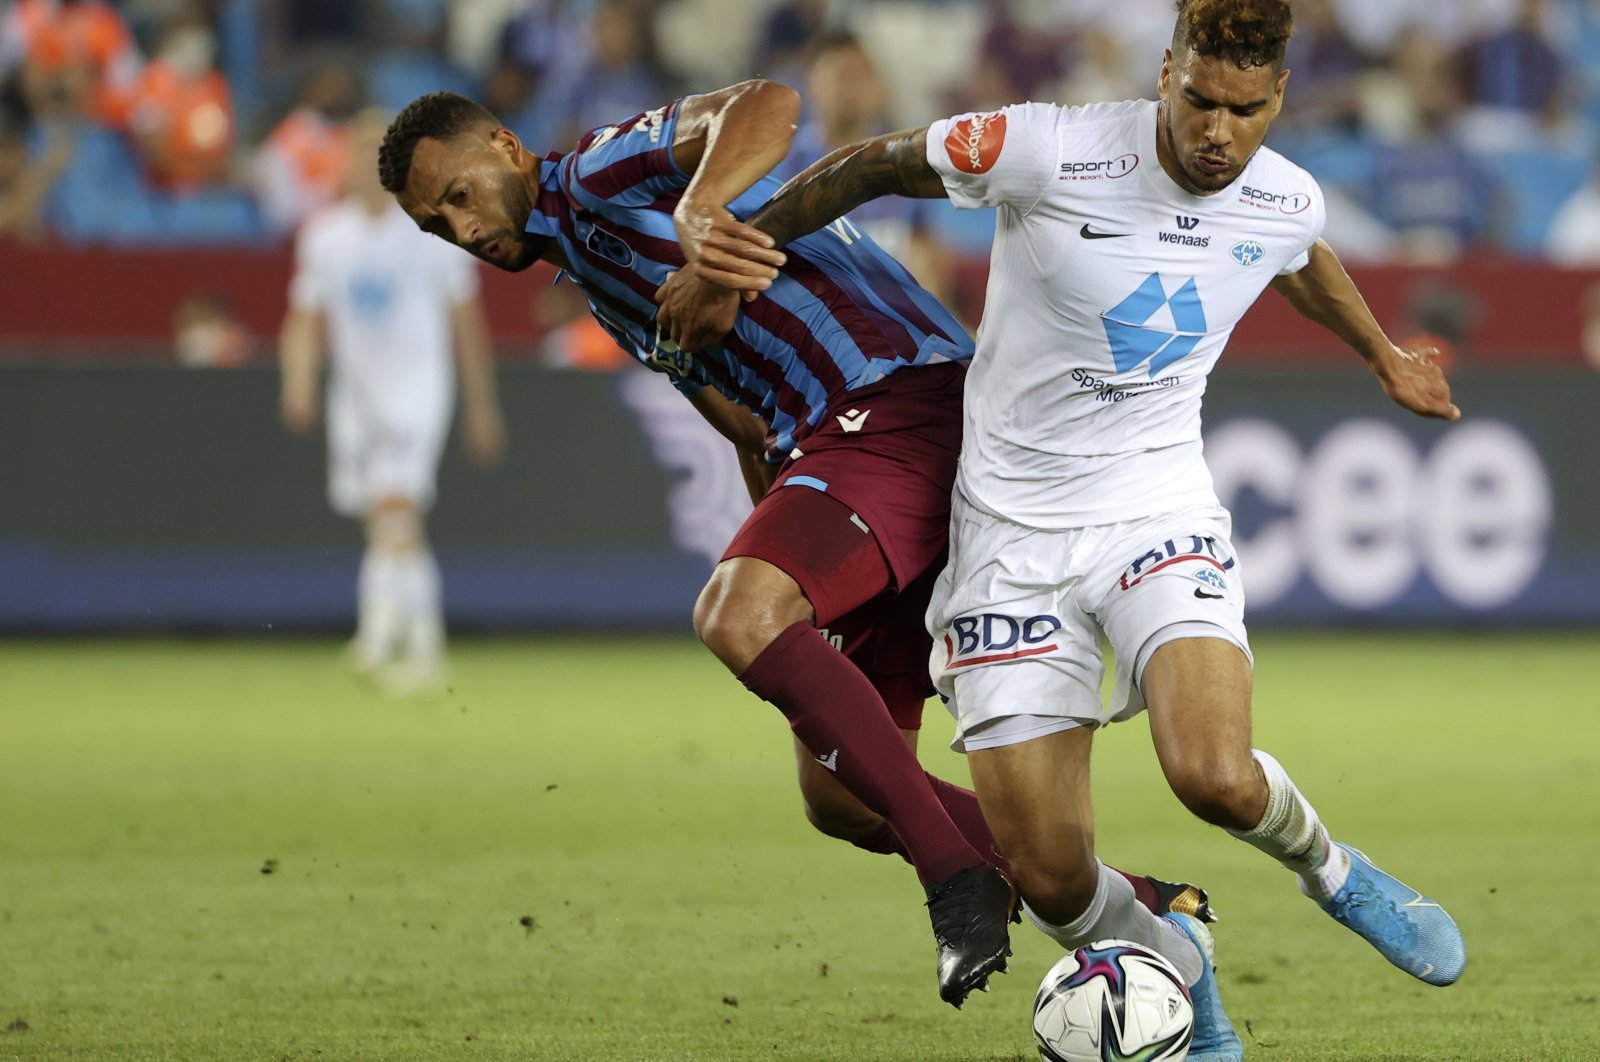 Molde's Ohi Omoijuanfo (R) duels for the ball with Trabzonspor's Vitor Hugo during the Europa Conference League qualifying match at Yeni Stadium, Trabzon, Turkey, Aug. 5, 2021. (AP Photo)